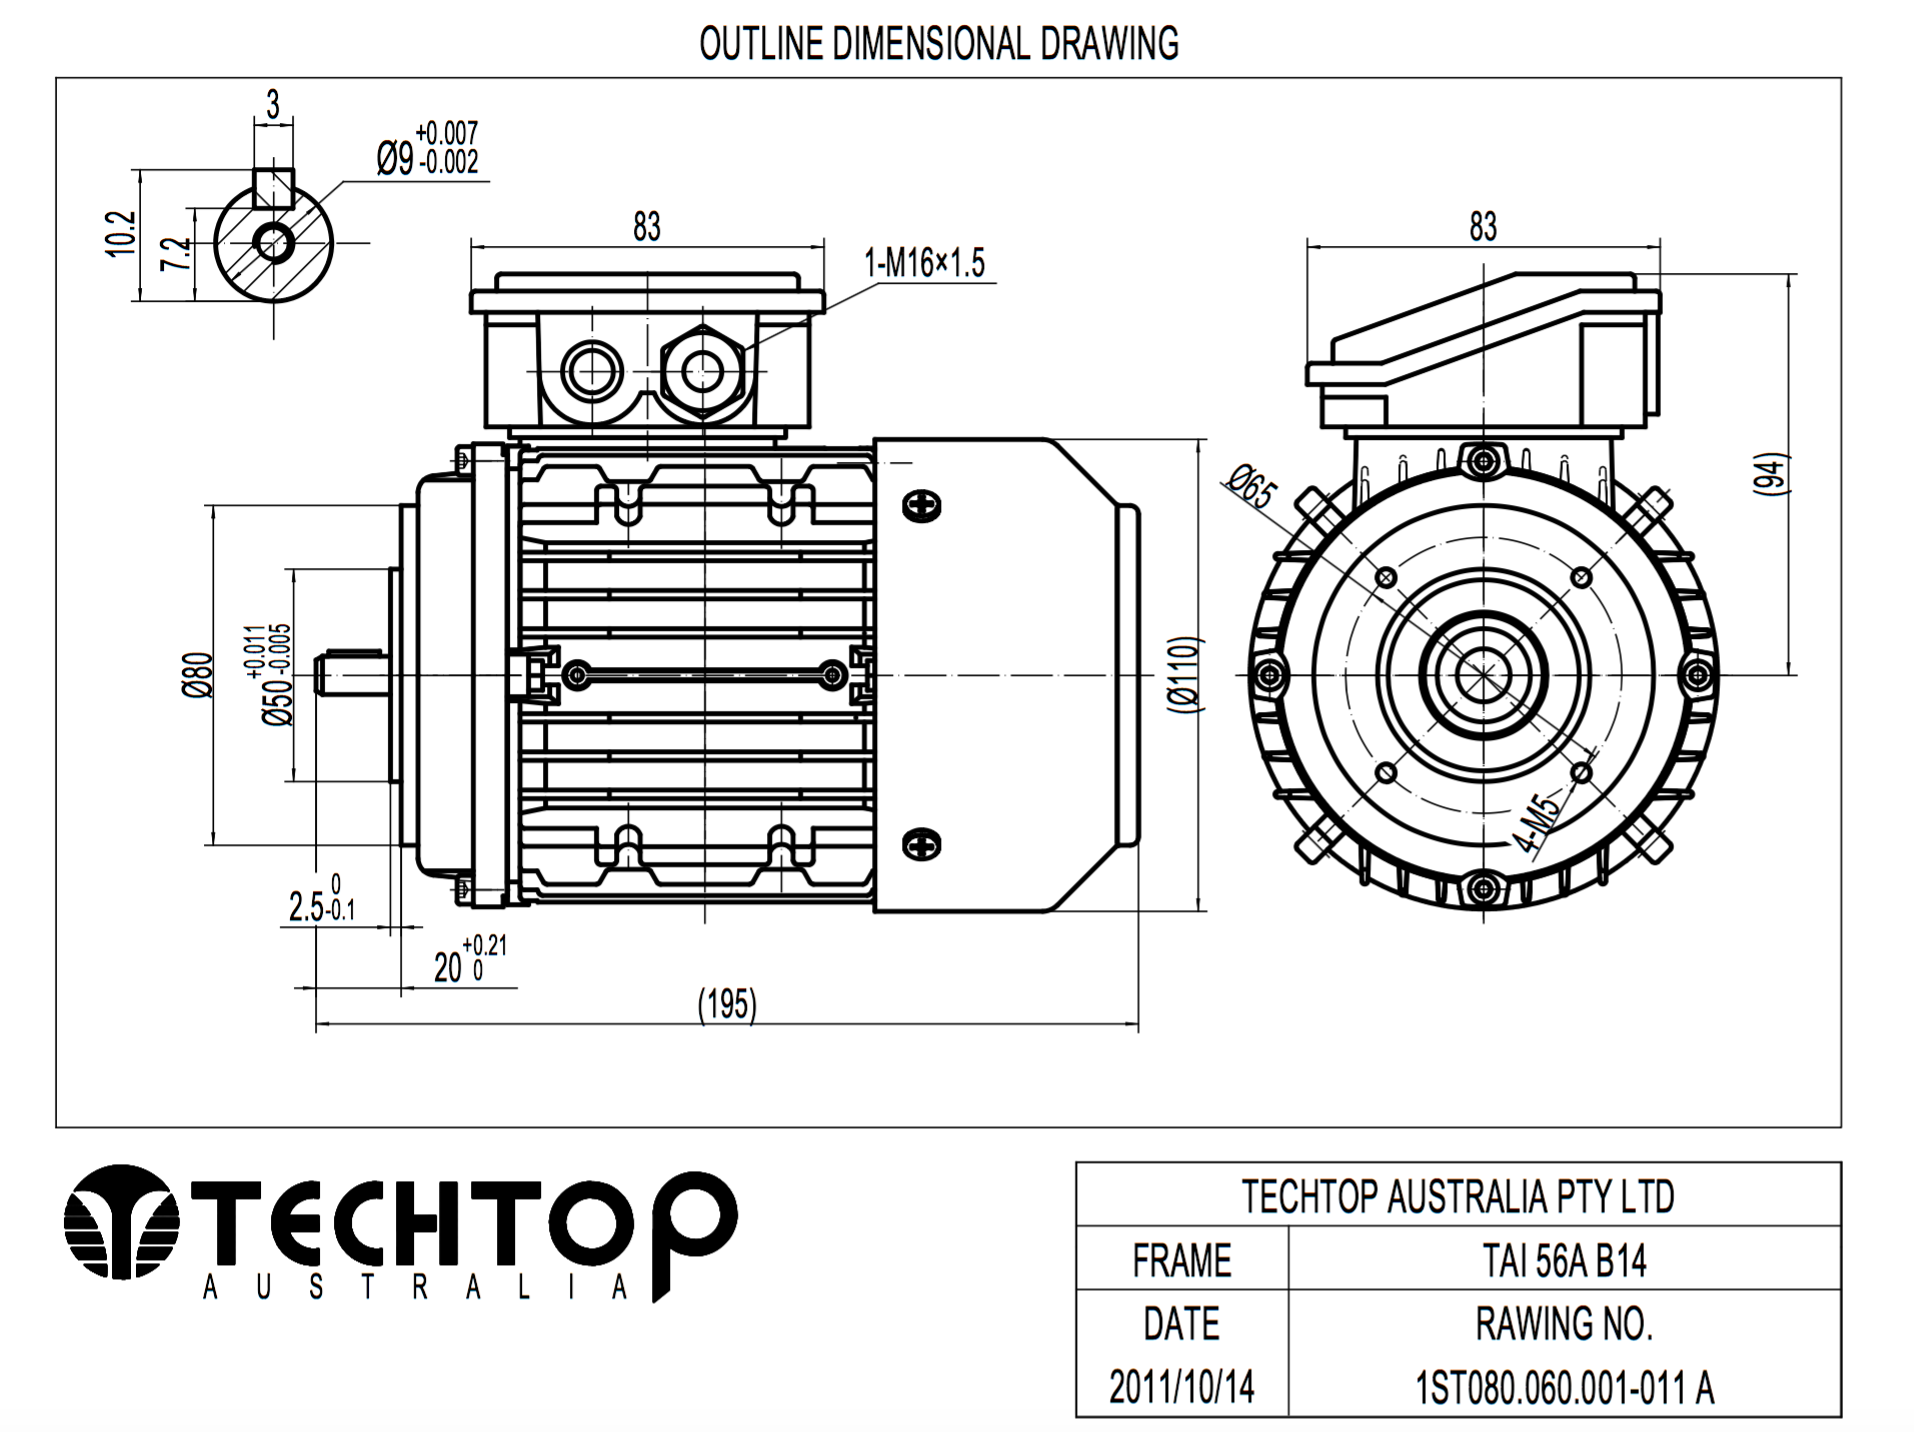 419890365236037508 additionally Lack Of Power At Times On C3 1 4 Hdi 16v T145 10 besides Three Phase Electric Motor 0 09kw 4p 1375rpm 415v B14a Flange Mounted Tai56b 4 Ip55 Aluminium as well P 0996b43f80cb19d3 furthermore Diagrammes. on variable gearbox